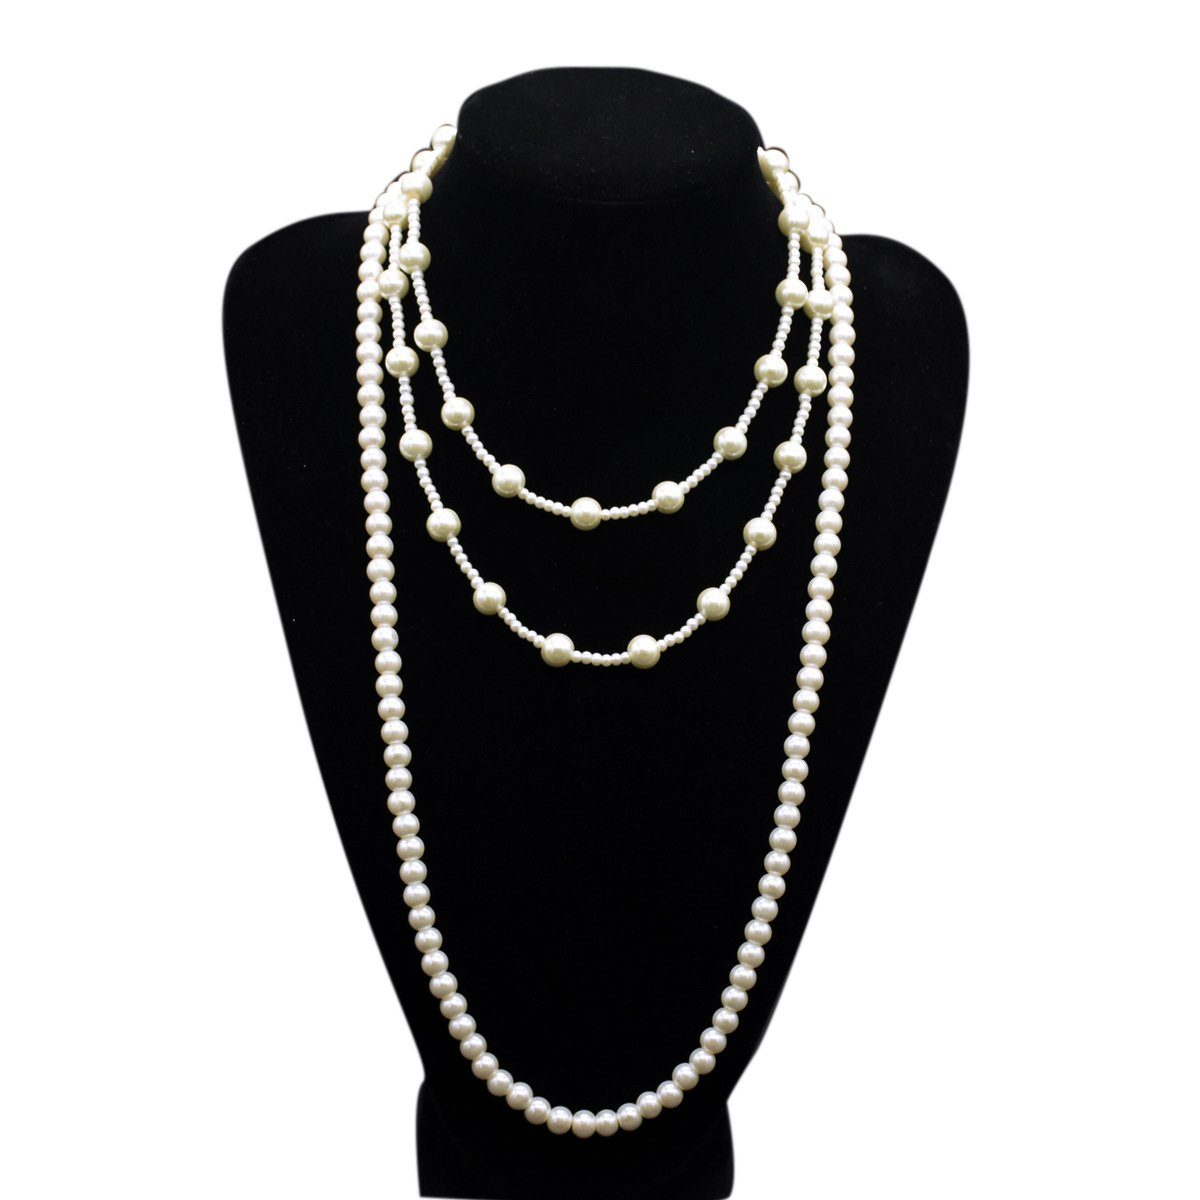 1920s Pearls Necklace Gatsby accessories Vintage Costume Jewelry Faux Ivory Pearl Cream Long Necklace